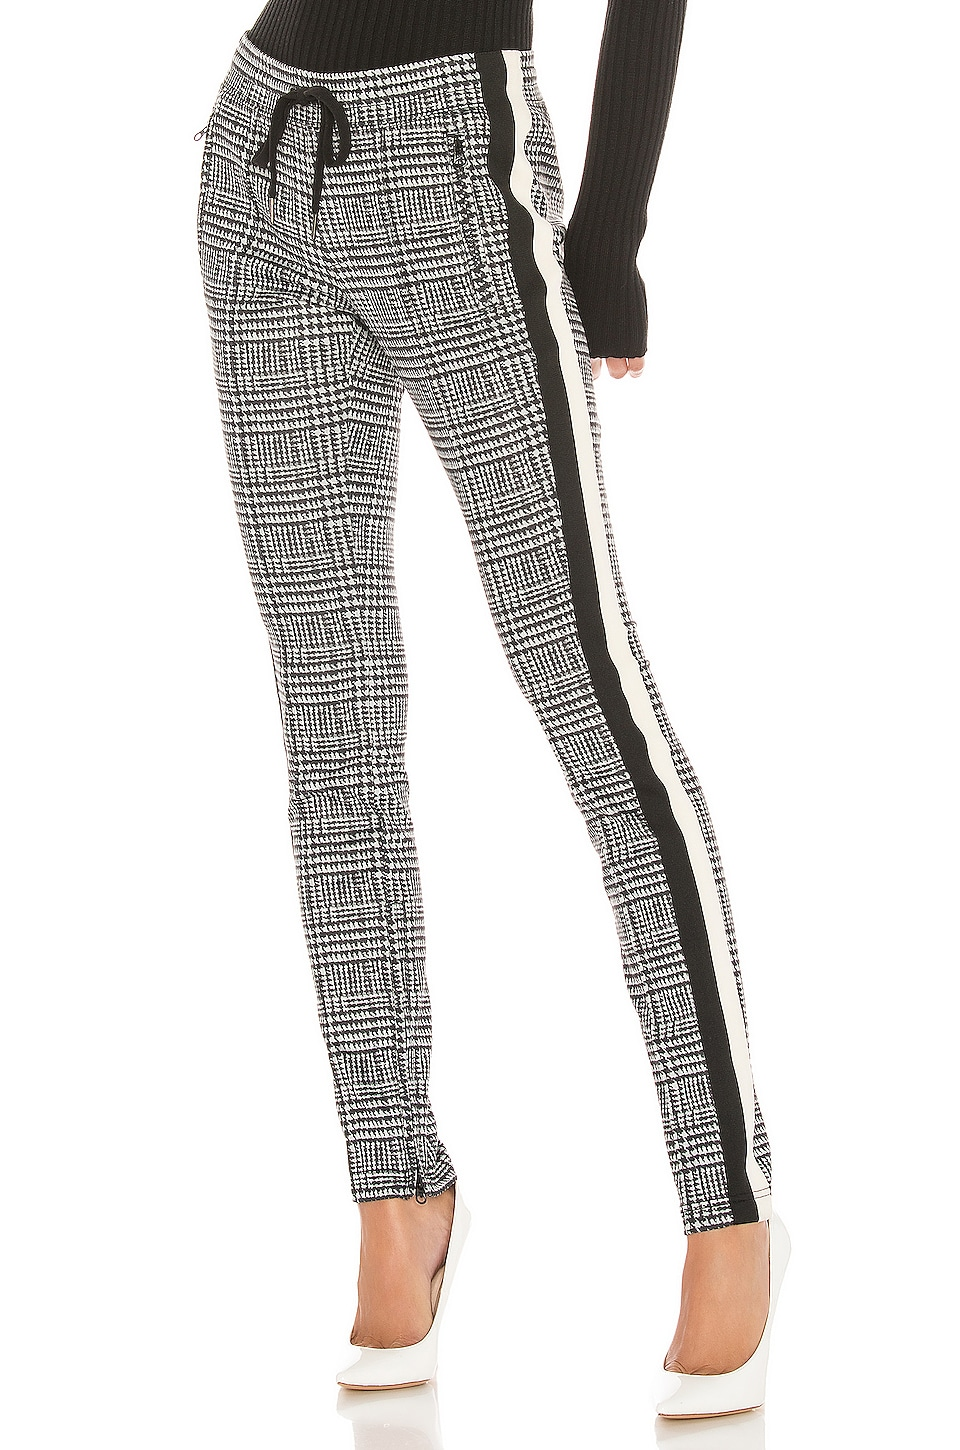 Pam & Gela Glen Tart Cigarette Pant in Glen Plaid Print